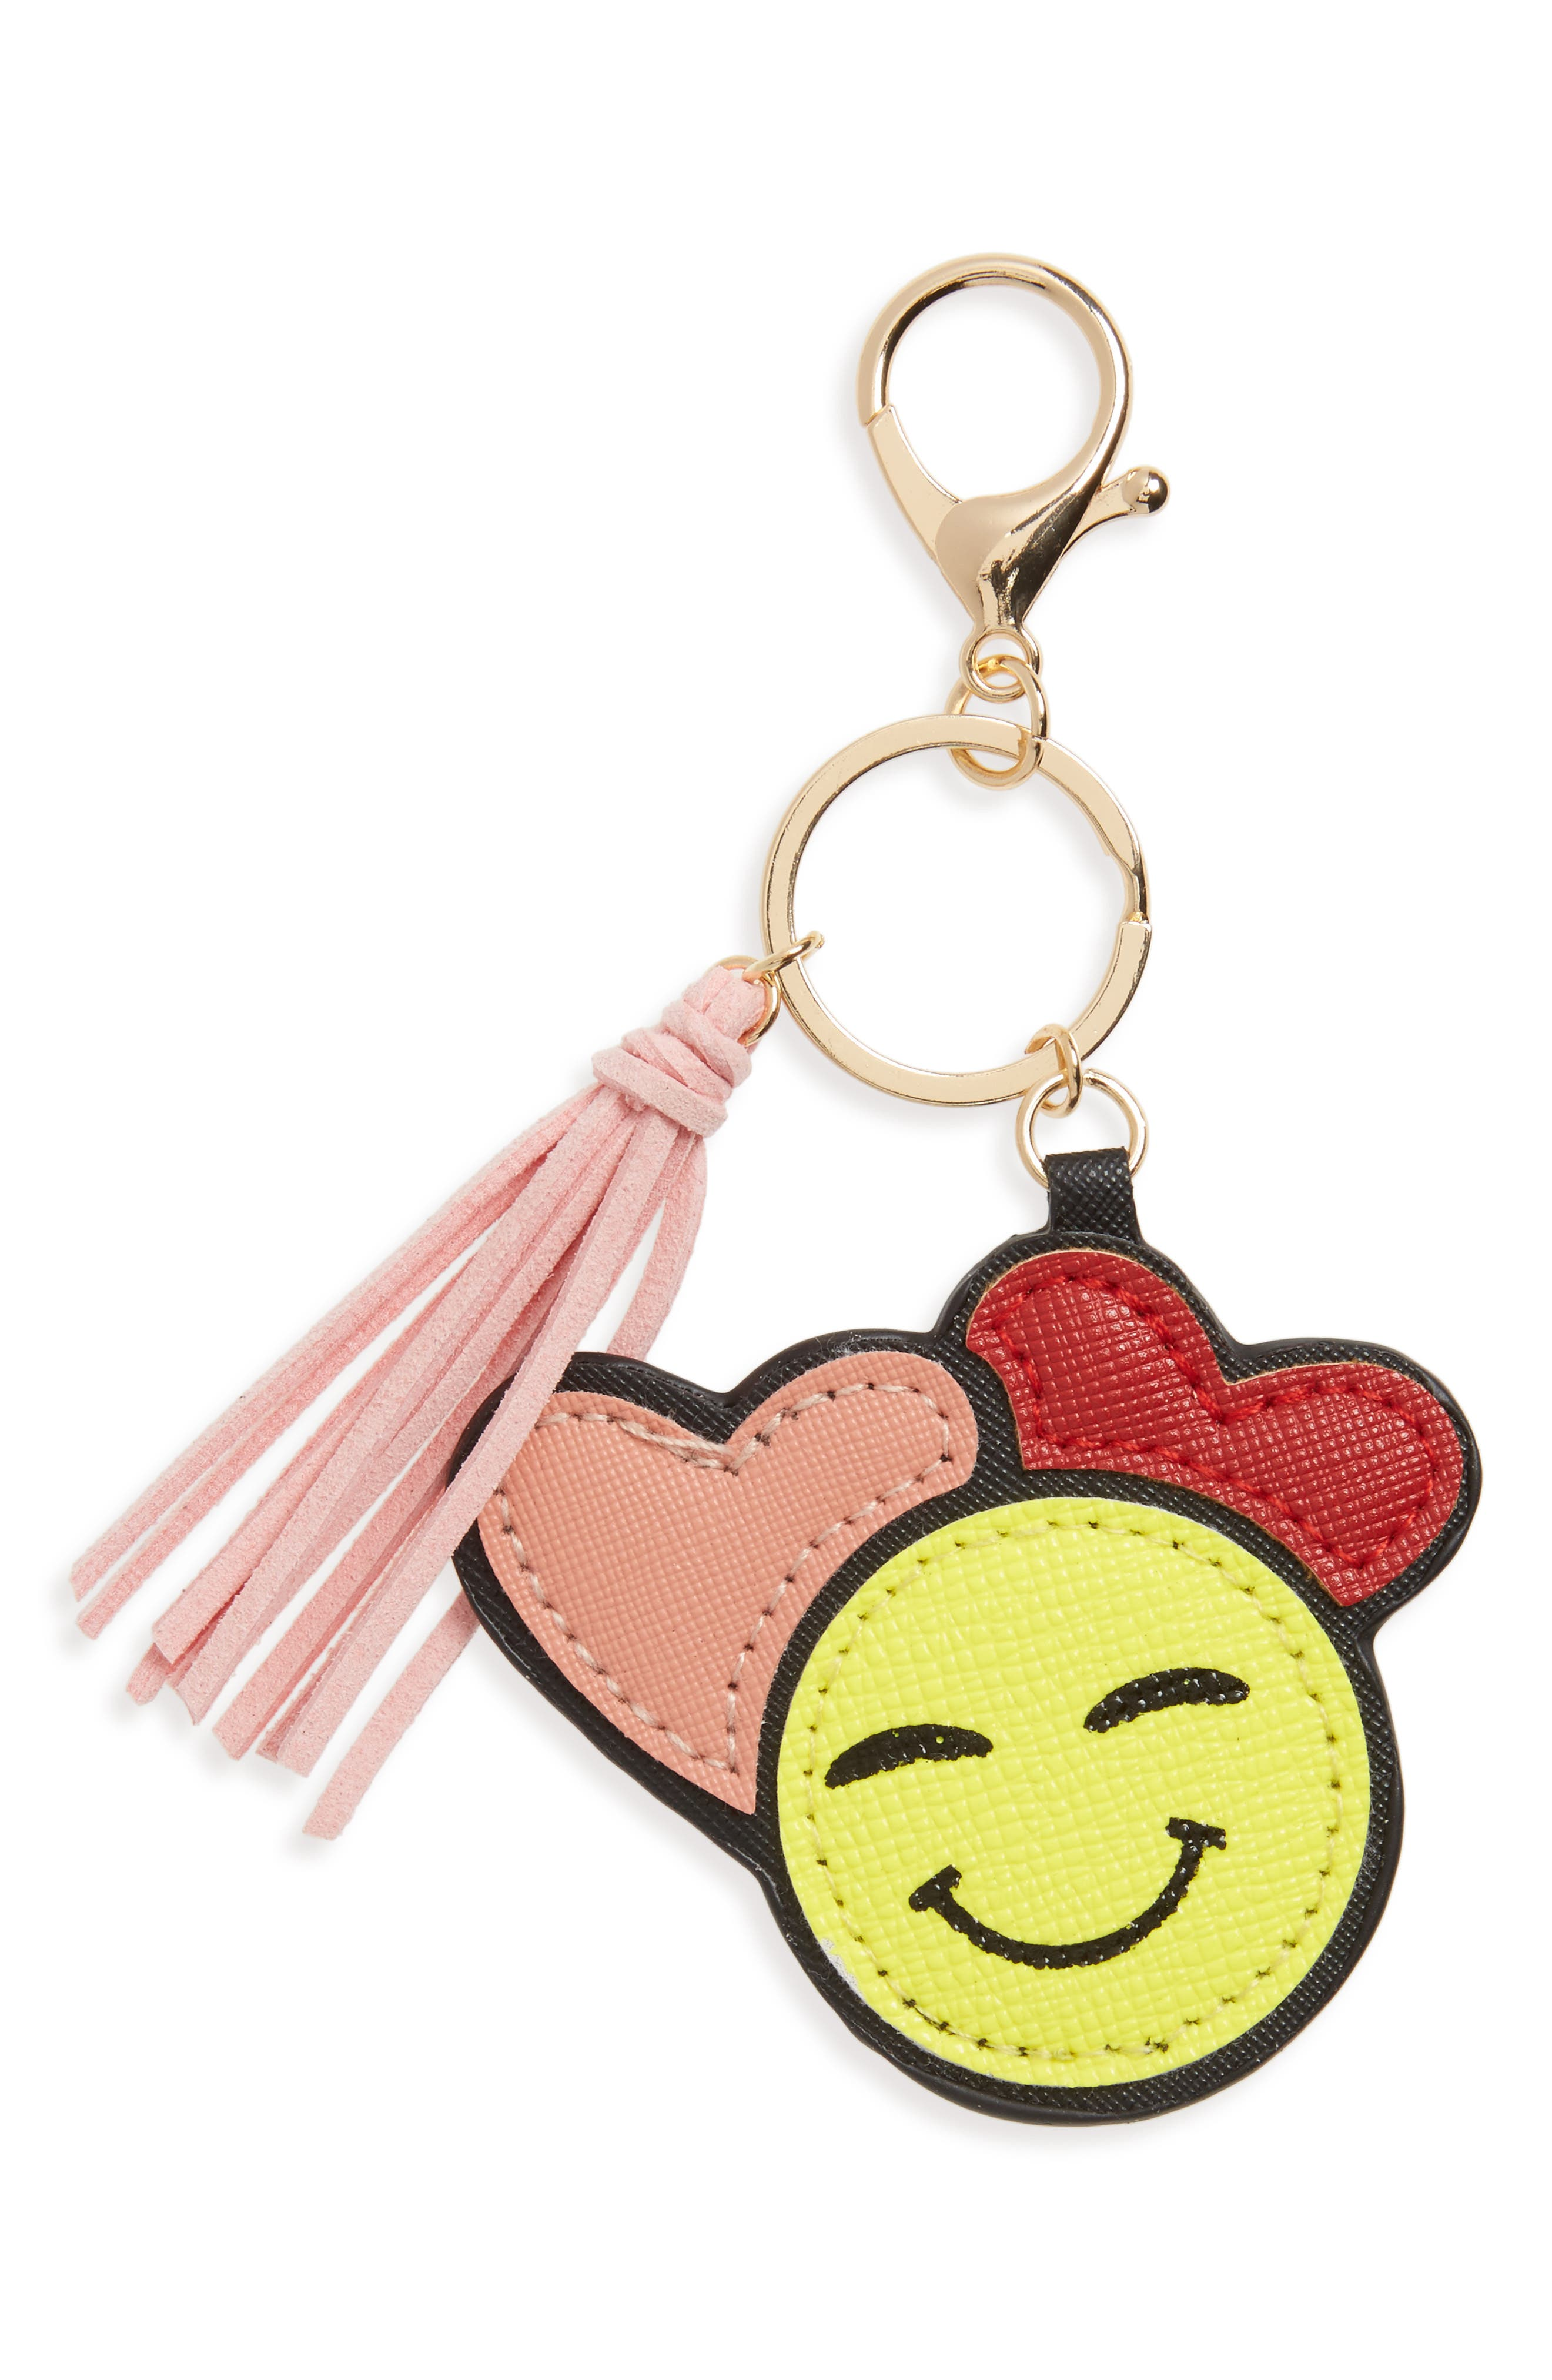 In Love Emoji Key Chain,                             Main thumbnail 1, color,                             001